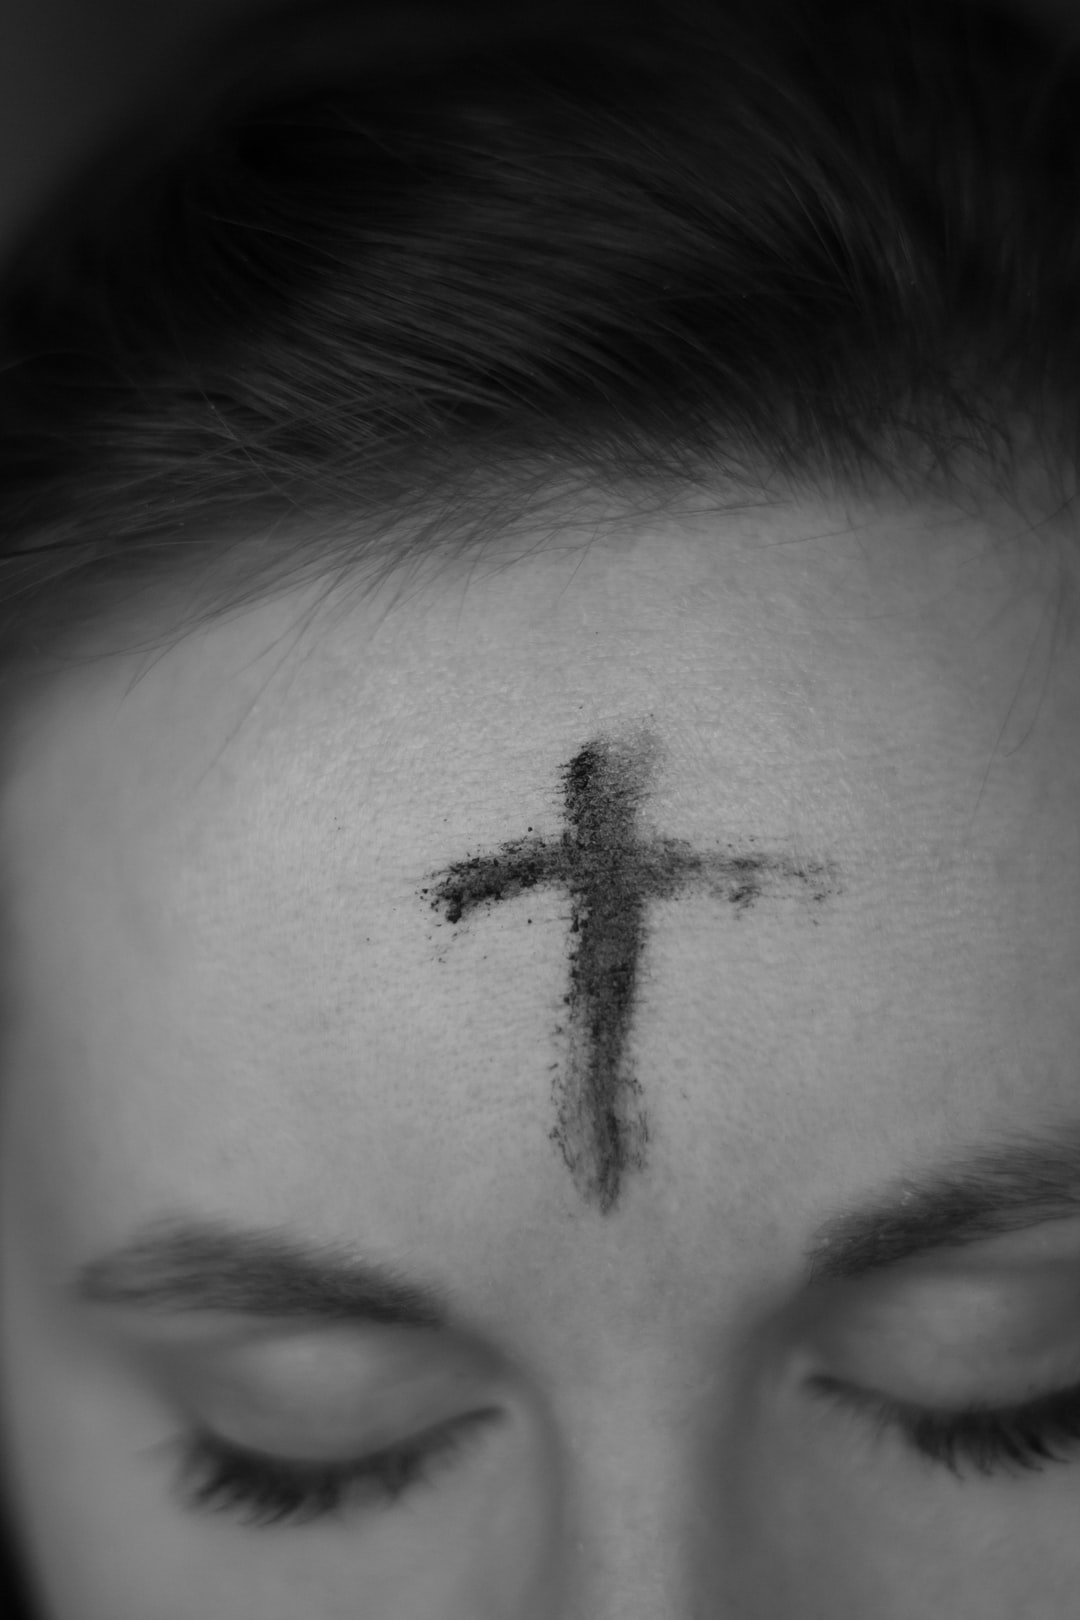 As a social media manager for my church, I realized there are very few stock photos for liturgical seasons. This was a DSLR selfie after attending an early morning Ash Wednesday service.